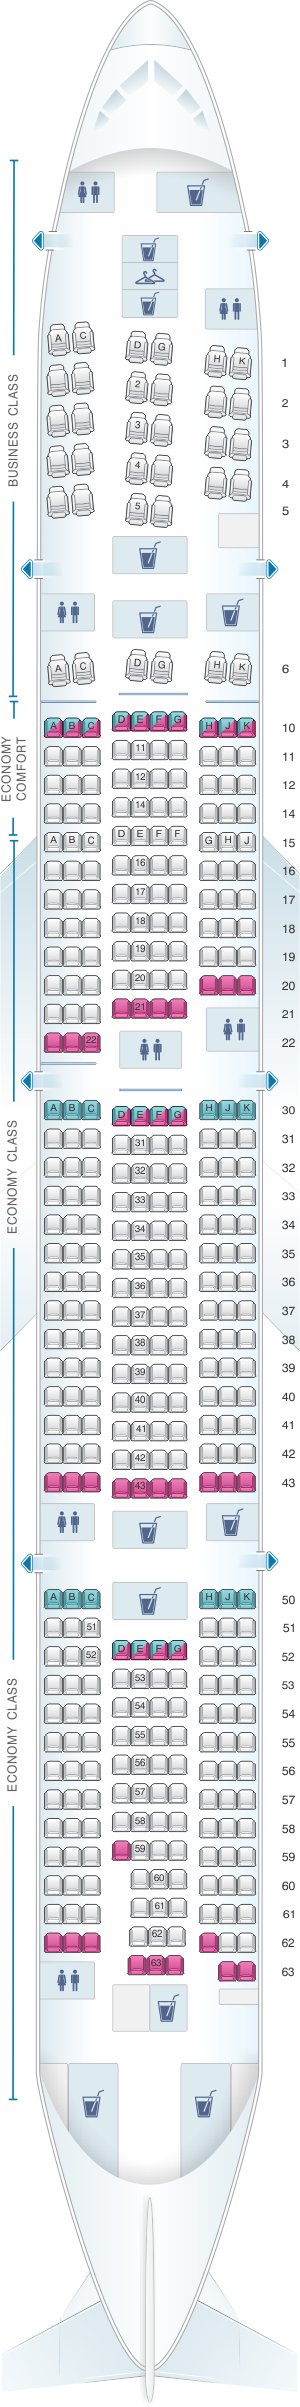 Seat map for KLM Boeing B777 300ER New World Business Class